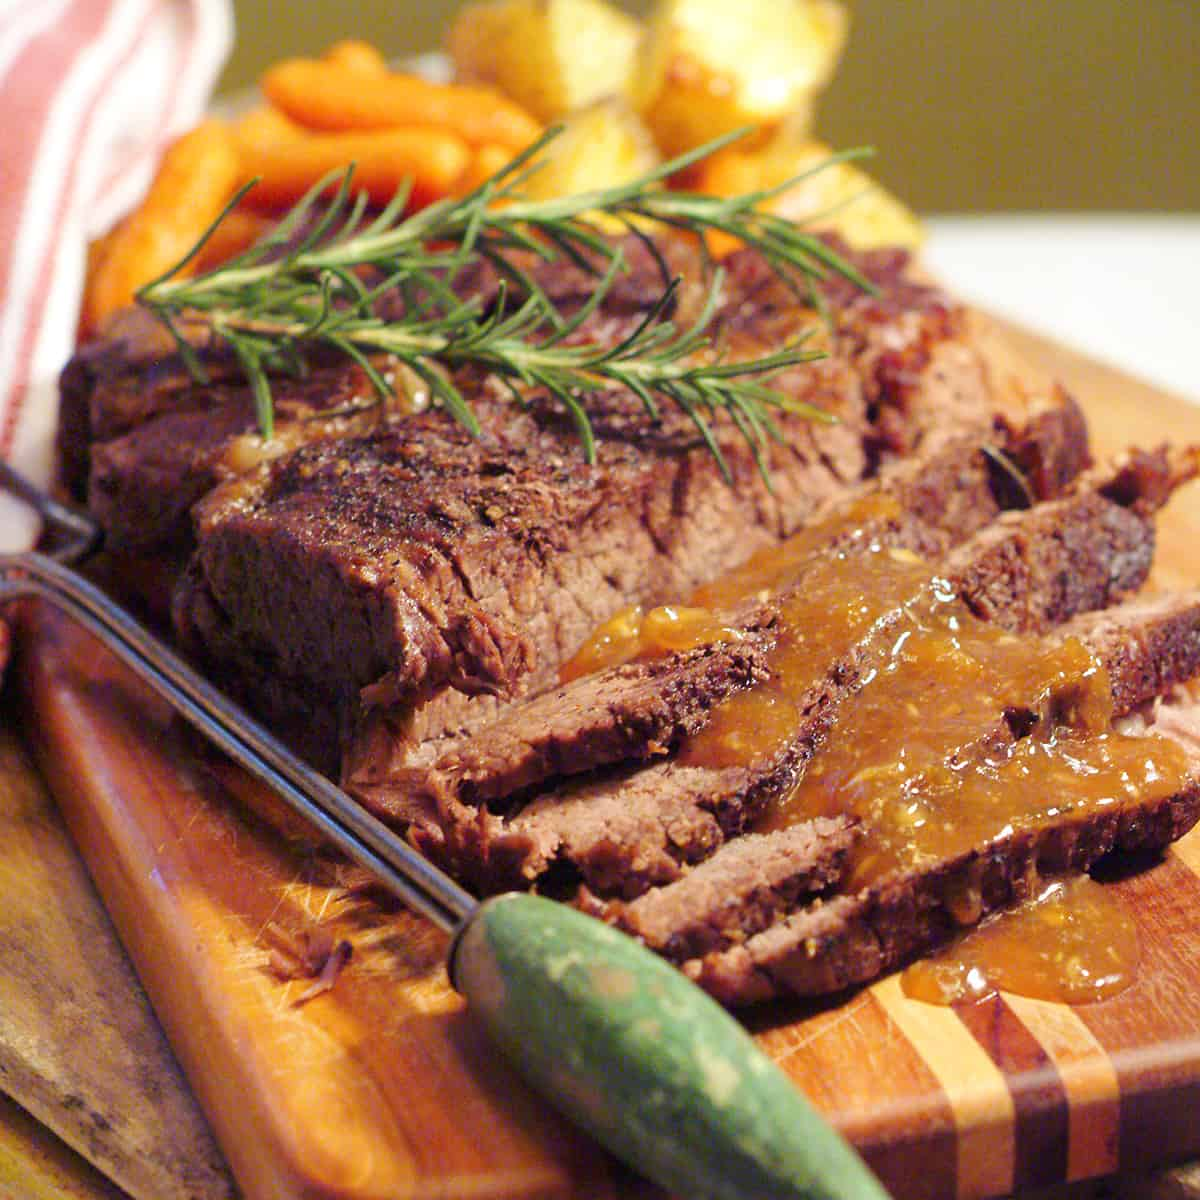 A chuck pot roast seasoned with rosemary and garlic and braised until tender. From @NevrEnoughThyme http://www.lanascooking.com/pot-roast-with-rosemary-and-garlic